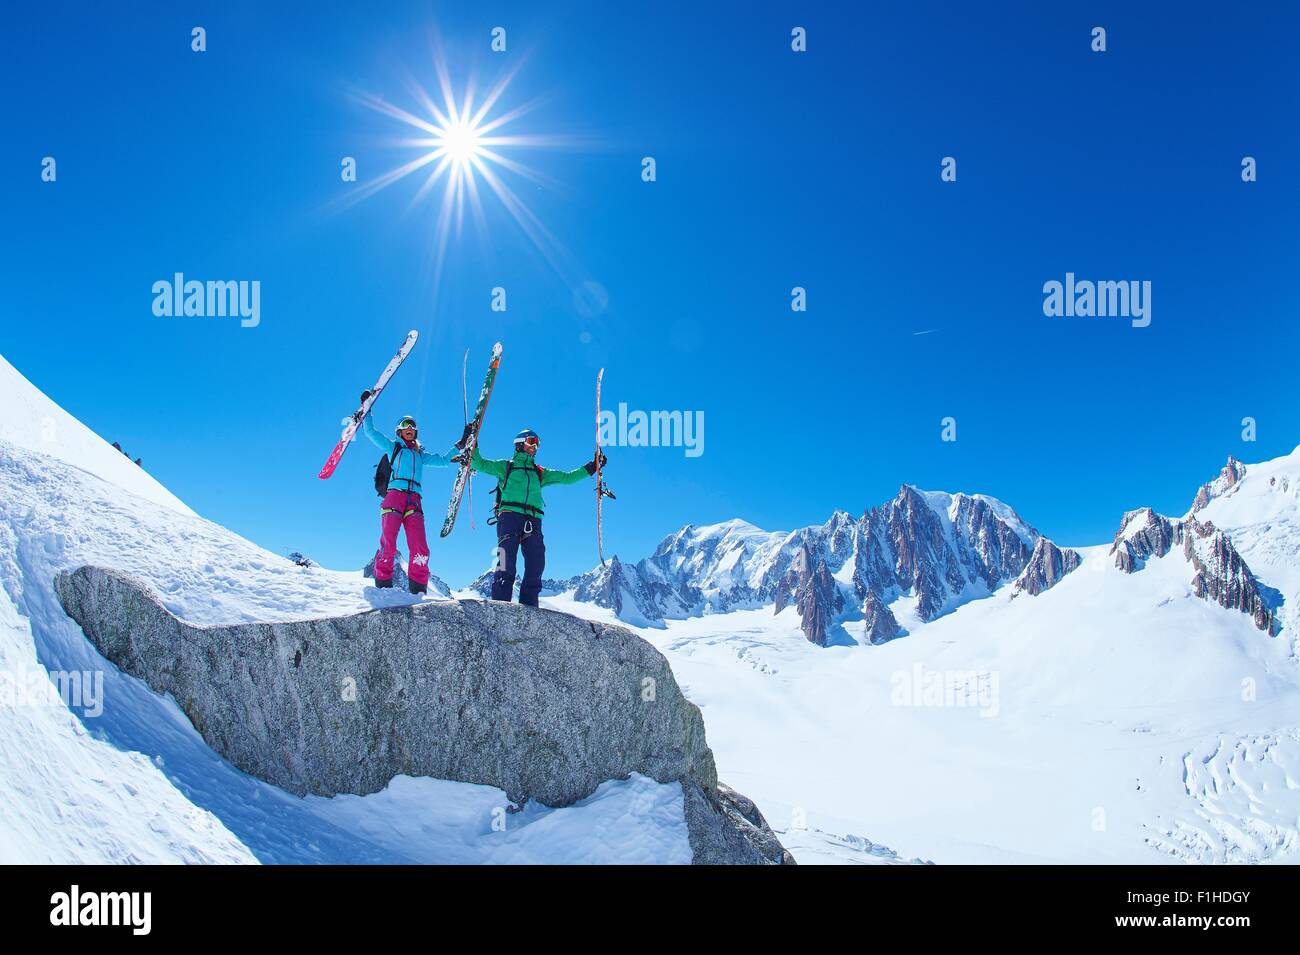 Male and female skiers holding up ski's on Mont Blanc massif, Graian Alps, France Stock Photo